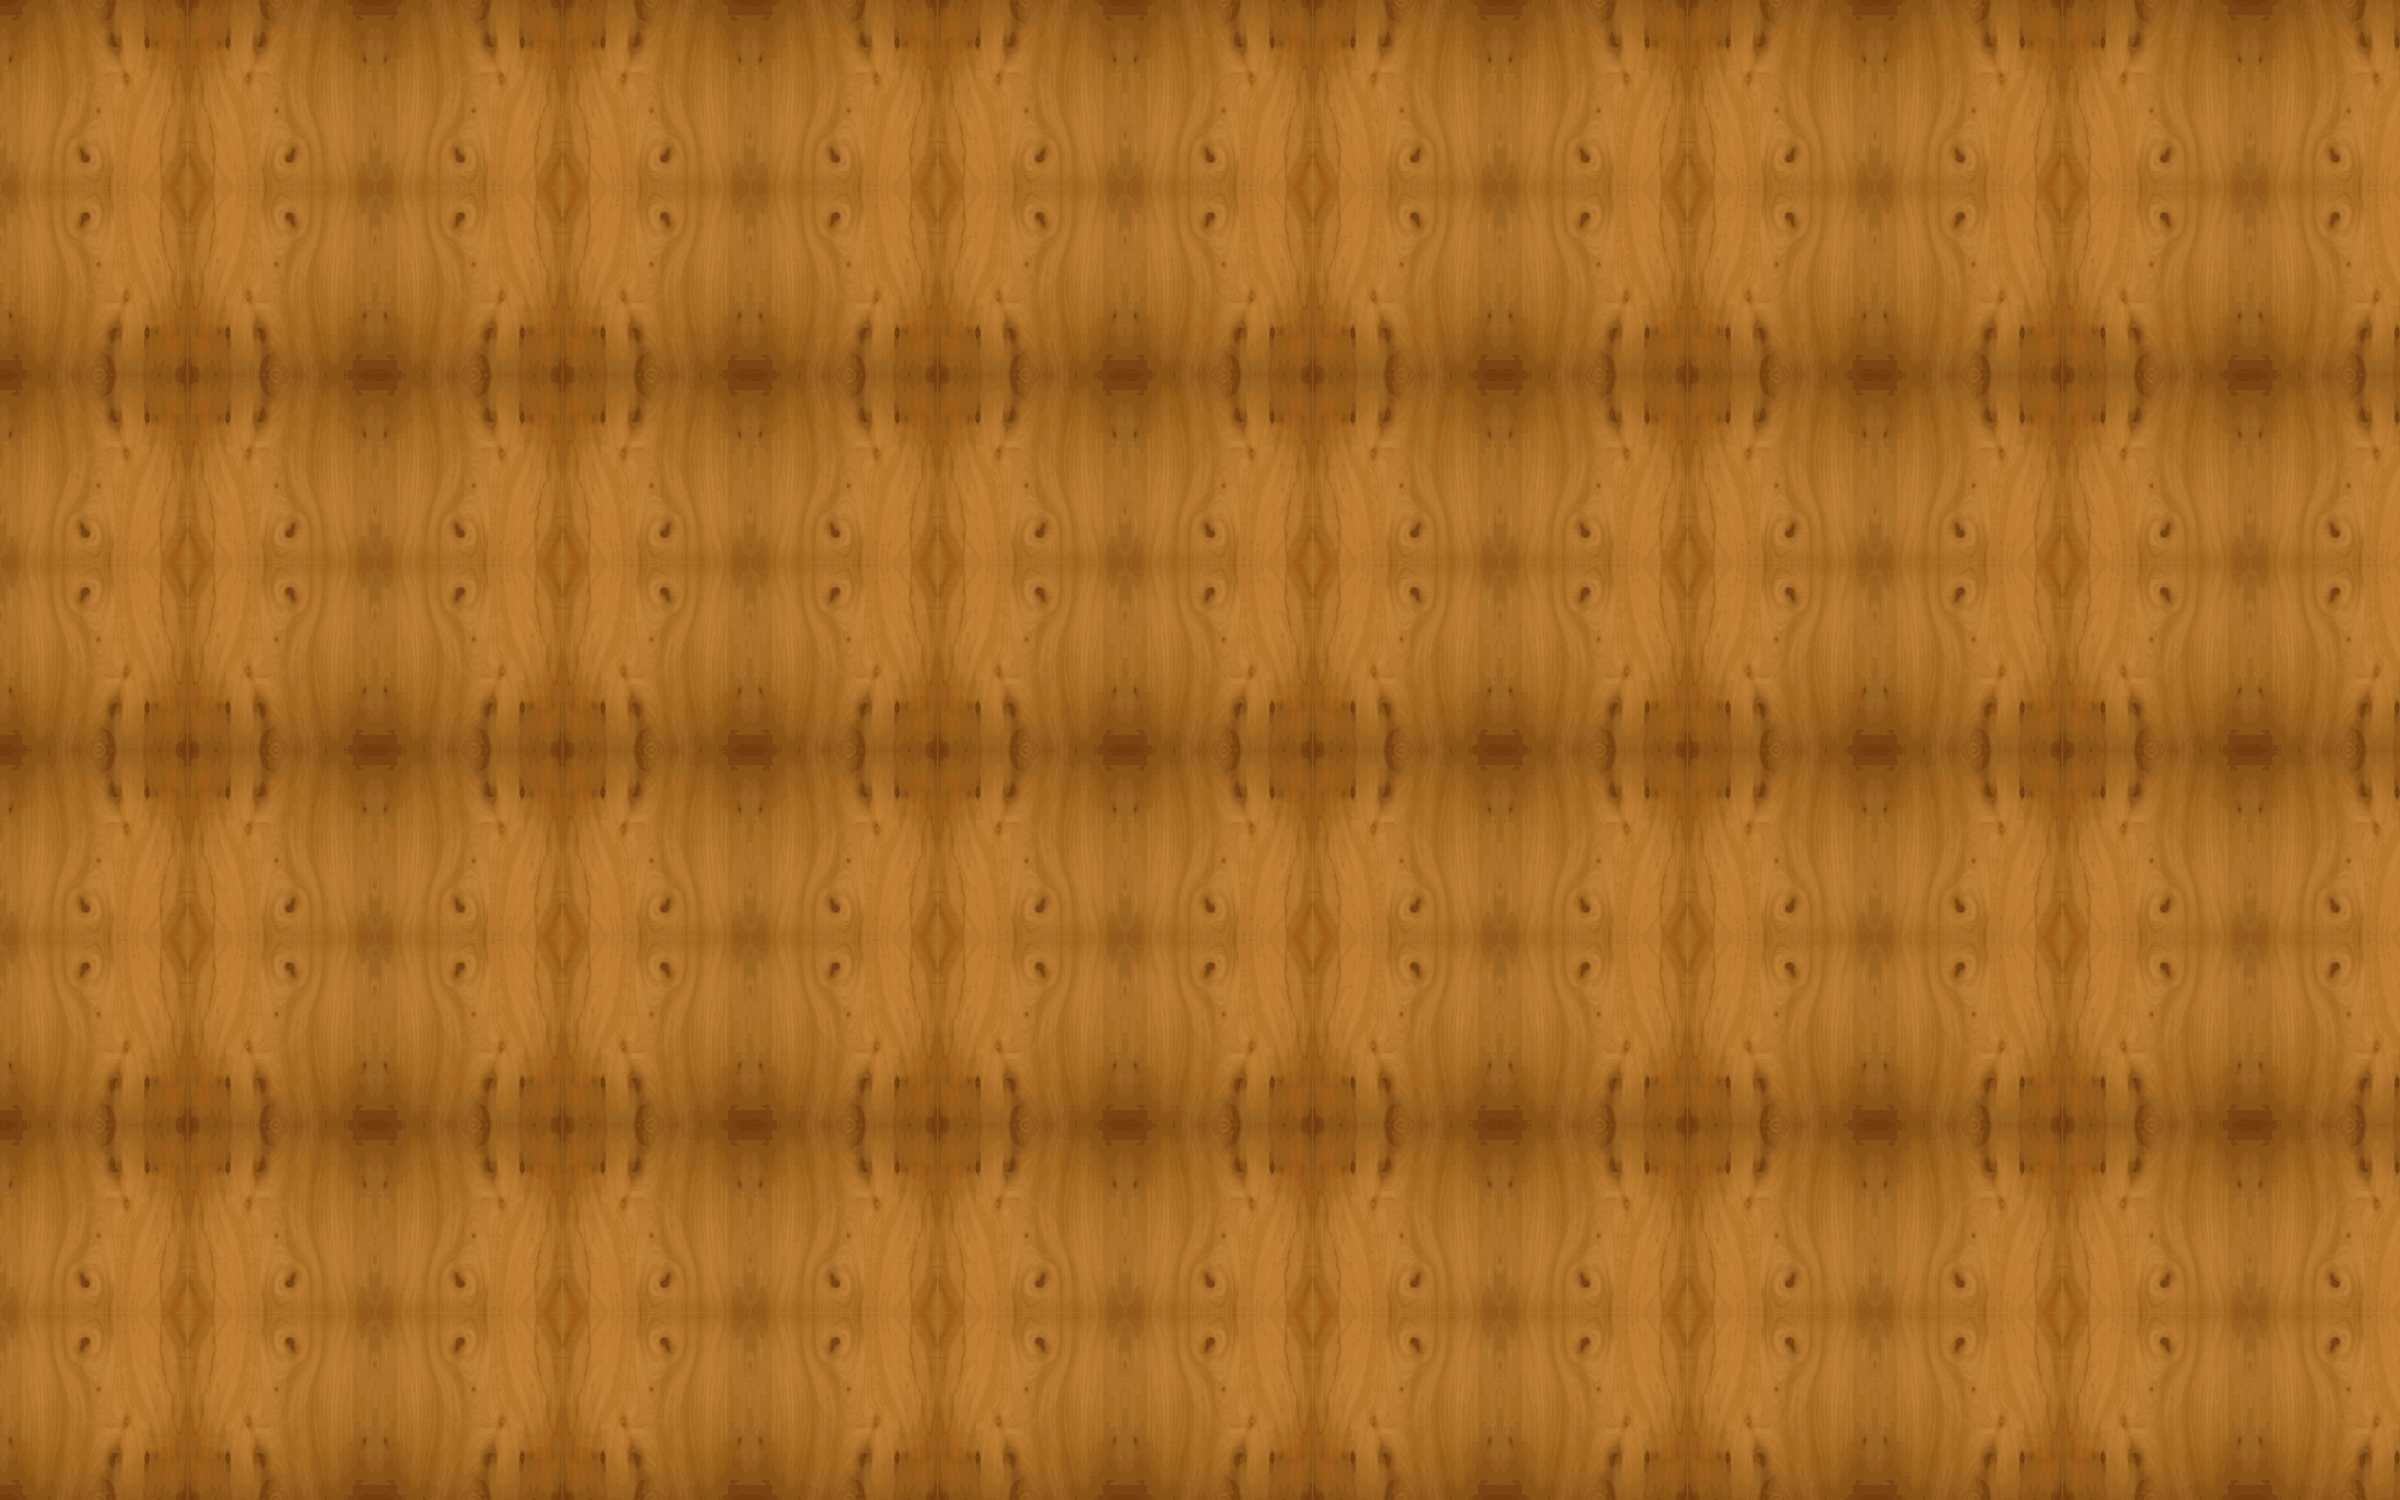 Tiles clipart wooden floor Floor Size Wood Reduced Texture